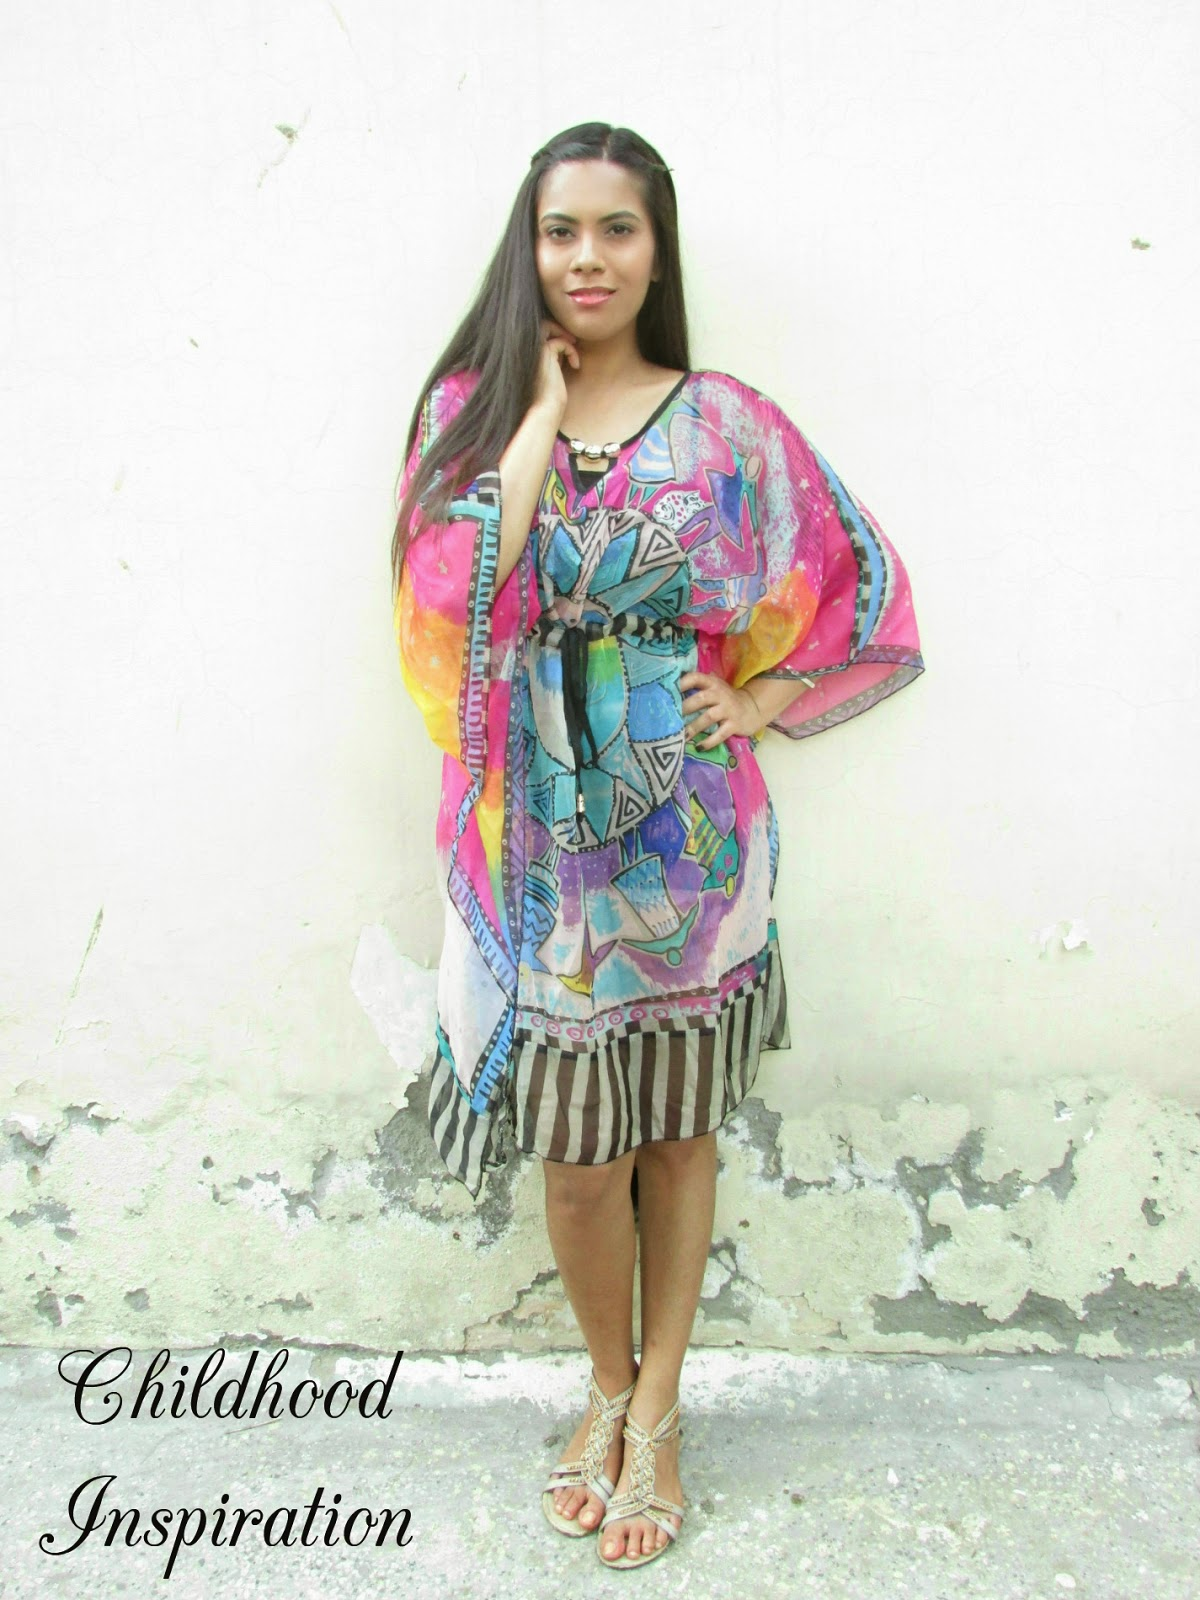 crochet , lace , summer, white , crochet top , lace top , white lace top , white crochet top , net , net top , white net top,Statement necklace, necklace, statement necklaces, big necklace, heavy necklaces , gold necklace, silver necklace, silver statement necklace, gold statement necklace, studded statement necklace , studded necklace, stone studded necklace, stone necklace, stove studded statement necklace, stone statement necklace, stone studded gold statement necklace, stone studded silver statement necklace, black stone necklace, black stone studded statement necklace, black stone necklace, black stone statement necklace, neon statement necklace, neon stone statement necklace, black and silver necklace, black and gold necklace, blank and silver statement necklace, black and gold statement necklace, silver jewellery, gold jewellery, stove jewellery, stone studded jewellery, imitation jewellery, artificial jewellery, junk jewellery, cheap jewellery ,hiddenfashion Statement necklace, hiddenfashion necklace, hiddenfashion statement necklaces,hiddenfashion big necklace, hiddenfashion  heavy necklaces , hiddenfashion gold necklace, hiddenfashion silver necklace,  hiddenfashion  statement necklace,hiddenfashion  gold statement necklace,hiddenfashion studded statement necklace , hiddenfashion studded necklace, hiddenfashion stone studded necklace, hiddenfashion stone necklace, hiddenfashion stove studded statement necklace, hiddenfashion stone statement necklace, hiddenfashion stone studded gold statement necklace, hiddenfashion stone studded silver statement necklace, hiddenfashion black stone necklace, hiddenfashion black stone studded statement necklace, hiddenfashion black stone necklace, hiddenfashion black stone statement necklace, hiddenfashion neon statement necklace, hiddenfashion neon stone statement necklace, hiddenfashion  black and silver necklace, hiddenfashion black and gold necklace, hiddenfashion black  and silver statement necklace, hiddenfashion black and gold statement necklace, silver jewellery, hiddenfashion gold jewellery, hiddenfashion stove jewellery, hiddenfashion stone studded jewellery, hiddenfashion imitation jewellery, hiddenfashion artificial jewellery, hiddenfashion junk jewellery, hiddenfashion cheap jewellery ,Cheap Statement necklace, Cheap necklace, Cheap statement necklaces,Cheap big necklace, Cheap heavy necklaces , Cheap gold necklace, Cheap silver necklace, Cheap silver statement necklace,Cheap gold statement necklace, Cheap studded statement necklace , Cheap studded necklace, Cheap stone studded necklace, Cheap stone necklace, Cheap stove studded statement necklace, Cheap stone statement necklace, Cheap stone studded gold statement necklace, Cheap stone studded silver statement necklace, Cheap black stone necklace, Cheap black stone studded statement necklace, Cheap black stone necklace, Cheap black stone statement necklace, Cheap neon statement necklace, Cheap neon stone statement necklace, Cheap black and silver necklace, Cheap black and gold necklace, Cheap black  and silver statement necklace, Cheap black and gold statement necklace, silver jewellery, Cheap gold jewellery, Cheap stove jewellery, Cheap stone studded jewellery, Cheap imitation jewellery, Cheap artificial jewellery, Cheap junk jewellery, Cheap cheap jewellery , Black pullover, black and grey pullover, black and white pullover, back cutout, back cutout pullover, back cutout sweater, back cutout jacket, back cutout top, back cutout tee, back cutout tee shirt, back cutout shirt, back cutout dress, back cutout trend, back cutout summer dress, back cutout spring dress, back cutout winter dress, High low pullover, High low sweater, High low jacket, High low top, High low tee, High low tee shirt, High low shirt, High low dress, High low trend, High low summer dress, High low spring dress, High low winter dress,hiddenfashion Black pullover, hiddenfashion black and grey pullover, hiddenfashion black and white pullover, hiddenfashion back cutout, hiddenfashion back cutout pullover, hiddenfashion back cutout sweater, hiddenfashion  back cutout jacket, hiddenfashion back cutout top, hiddenfashion back cutout tee, hiddenfashion back cutout tee shirt, hiddenfashion back cutout shirt, hiddenfashion back cutout dress, hiddenfashion back cutout trend, hiddenfashion back cutout summer dress, hiddenfashion back cutout spring dress, hiddenfashion back cutout winter dress, hiddenfashion High low pullover, hiddenfashion High low sweater, hiddenfashion High low jacket, hiddenfashion High low top, hiddenfashion High low tee, ocrun High low tee shirt, hiddenfashion High low shirt, hiddenfashion High low dress, hiddenfashion High low trend, hiddenfashion High low summer dress, hiddenfashion High low spring dress, hiddenfashion High low winter dress, Cropped, cropped tee,cropped tee shirt , cropped shirt, cropped sweater, cropped pullover, cropped cardigan, cropped top, cropped tank top, Cheap Cropped, cheap cropped tee,cheap cropped tee shirt ,cheap  cropped shirt, cheap cropped sweater, cheap cropped pullover, cheap cropped cardigan,cheap  cropped top, cheap cropped tank top,banggood Cropped, hiddenfashion cropped tee, hiddenfashion cropped tee shirt , hiddenfashion cropped shirt, hiddenfashion cropped sweater, hiddenfashion cropped pullover, hiddenfashion cropped cardigan, hiddenfashion cropped top, chicnova cropped  top, Winter Cropped, winter cropped tee, winter cropped tee shirt , winter cropped shirt, winter cropped sweater, winter cropped pullover, winter cropped cardigan, winter cropped top, winter cropped tank top,Leggings, winter leggings, warm leggings, winter warm leggings, fall leggings, fall warm leggings, tights, warm tights, winter tights, winter warm tights, fall tights, fall warm tights,hiddenfashion leggings, hiddenfashion tights, warm warm leggings, hiddenfashion warm tights, hiddenfashion winter warm tights, hiddenfashion fall warm tights, woollen tights , woollen leggings, shopclues woollen tights, hiddenfashion woollen leggings, woollen bottoms, hiddenfashion woollen bottoms, hiddenfashion woollen pants , woollen pants,  Christmas , Christmas leggings, Christmas tights, shopclues Christmas, shopclues Christmas clothes, clothes for Christmas , shopclues Christmas leggings, shopclues Christmas tights, shopclues warm Christmas leggings, shopclues warm Christmas  tights, shopclues snowflake leggings, snowflake leggings, snowflake tights, shopclues rain deer tights, shopclues rain deer leggings, ugly Christmas sweater, Christmas tree, Christmas clothes, Santa clause,Wishlist, clothes wishlist, hiddenfashion wishlist, hiddenfashion, hiddenfashion.com, hiddenfashion wishlist, autumn wishlist,hiddenfashion ocrun wishlist, hiddenfashion.com,autumn clothes wishlist, autumn shoes wishlist, autumn bags wishlist, autumn boots wishlist, autumn pullovers wishlist, autumn cardigans wishlist, autymn coats wishlist, hiddenfashion clothes wishlist, hiddenfashion bags wishlist, hiddenfashion bags wishlist, hiddenfashion boots wishlist, hiddenfashion pullover wishlist, hiddenfashion cardigans wishlist, hiddenfashion autum clothes wishlist,  winter clothes, wibter clothes wishlist, winter wishlist, wibter pullover wishlist, winter bags wishlist, winter boots wishlist, winter cardigans wishlist, winter leggings wishlist, hiddenfashion winter clothes, hiddenfashion autumn clothes, hiddenfashion winter collection, hiddenfashion autumn collection,Cheap clothes online,cheap dresses online, cheap jumpsuites online, cheap leggings online, cheap shoes online, cheap wedges online , cheap skirts online, cheap jewellery online, cheap jackets online, cheap jeans online, cheap maxi online, cheap makeup online, cheap cardigans online, cheap accessories online, cheap coats online,cheap brushes online,cheap tops online, chines clothes online, Chinese clothes,Chinese jewellery ,Chinese jewellery online,Chinese heels online,Chinese electronics online,Chinese garments,Chinese garments online,Chinese products,Chinese products online,Chinese accessories online,Chinese inline clothing shop,Chinese online shop,Chinese online shoes shop,Chinese online jewellery shop,Chinese cheap clothes online,Chinese  clothes shop online, korean online shop,korean garments,korean makeup,korean makeup shop,korean makeup online,korean online clothes,korean online shop,korean clothes shop online,korean dresses online,korean dresses online,cheap Chinese clothes,cheap korean clothes,cheap Chinese makeup,cheap korean makeup,cheap korean shopping ,cheap Chinese shopping,cheap Chinese online shopping,cheap korean online shopping,cheap Chinese shopping website,cheap korean shopping website, cheap online shopping,online shopping,how to shop online ,how to shop clothes online,how to shop shoes online,how to shop jewellery online,how to shop mens clothes online, mens shopping online,boys shopping online,boys jewellery online,mens online shopping,mens online shopping website,best Chinese shopping website, Chinese online shopping website for men,best online shopping website for women,best korean online shopping,best korean online shopping website,korean fashion,korean fashion for women,korean fashion for men,korean fashion for girls,korean fashion for boys,best chinese online shopping,best chinese shopping website,best chinese online shopping website,wholesale chinese shopping website,wholesale shopping website,chinese wholesale shopping online,chinese wholesale shopping, chinese online shopping on wholesale prices, clothes on wholesale prices,cholthes on wholesake prices,clothes online on wholesales prices,online shopping, online clothes shopping, online jewelry shopping,how to shop online, how to shop clothes online, how to shop earrings online, how to shop,skirts online, dresses online,jeans online, shorts online, tops online, blouses online,shop tops online, shop blouses online, shop skirts online, shop dresses online, shop botoms online, shop summer dresses online, shop bracelets online, shop earrings online, shop necklace online, shop rings online, shop highy low skirts online, shop sexy dresses onle, men's clothes online, men's shirts online,men's jeans online, mens.s jackets online, mens sweaters online, mens clothes, winter coats online, sweaters online, cardigens online,beauty , fashion,beauty and fashion,beauty blog, fashion blog , indian beauty blog,indian fashion blog, beauty and fashion blog, indian beauty and fashion blog, indian bloggers, indian beauty bloggers, indian fashion bloggers,indian bloggers online, top 10 indian bloggers, top indian bloggers,top 10 fashion bloggers, indian bloggers on blogspot,home remedies, how to,hiddenfashion online shopping,hiddenfashion online shopping review,hiddenfashion.com review,hiddenfashion online clothing store,hiddenfashion online chinese store,hiddenfashion online shopping,hiddenfashion  site review,hiddenfashion.com site review, hiddenfashion Chines fashion, hiddenfashion , hiddenfashion.com, hiddenfashion clothing, hiddenfashion dresses, hiddenfashion shoes, hiddenfashion accessories,hiddenfashion men cloths ,hiddenfashion makeup, hiddenfashion helth products,hiddenfashion Chinese online shopping, hiddenfashion Chinese store, hiddenfashion online chinese shopping, hiddenfashion lchinese shopping online,hiddenfashion, hiddenfashion dresses, hiddenfashion clothes, hiddenfashion garments, hiddenfashion clothes, hiddenfashion skirts, hiddenfashion pants, hiddenfashion tops, hiddenfashion cardigans, hiddenfashion leggings, hiddenfashion fashion , hiddenfashion clothes fashion, hiddenfashion footwear, hiddenfashion footwear, hiddenfashion jewellery, hiddenfashion fashion jewellery, hiddenfashion rings, hiddenfashion necklace, hiddenfashion bracelets, hiddenfashion earings,Autumn, fashion, hiddenfashion, wishlist,Winter,fall, fall abd winter, winter clothes , fall clothes, fall and winter clothes, fall jacket, winter jacket, fall and winter jacket, fall blazer, winter blazer, fall and winter blazer, fall coat , winter coat, falland winter coat, fall coverup, winter coverup, fall and winter coverup, outerwear, coat , jacket, blazer, fall outerwear, winter outerwear, fall and winter outerwear, woolen clothes, wollen coat, woolen blazer, woolen jacket, woolen outerwear, warm outerwear, warm jacket, warm coat, warm blazer, warm sweater, coat , white coat, white blazer, white coat, white woolen blazer, white coverup, white woolens, hiddenfashion online shopping review,hiddenfashion.com review,hiddenfashion online clothing store,hiddenfashion online chinese store,hiddenfashion a online shopping,hiddenfashion site review, hiddenfashion.com site review, hiddenfashion Chines fashion, hiddenfashion , hiddenfashion.com, hiddenfashion clothing, hiddenfashion dresses, hiddenfashion shoes, hiddenfashion accessories,hiddenfashion men cloths ,hiddenfashion makeup, ocrun helth products,hiddenfashion chinese online shopping, hiddenfashion Chinese store, hiddenfashion online chinese shopping, hiddenfashion chinese shopping online,hiddenfashion, hiddenfashion dresses, hiddenfashion clothes, hiddenfashion garments, hiddenfashion clothes, hiddenfashion skirts, hiddenfashion pants, hiddenfashion tops, chicnova cardigans, hiddenfashion leggings, chicnova fashion , hiddenfashion clothes fashion, hiddenfashion footwear, hiddenfashion fashion footwear, hiddenfashion jewellery, hiddenfashion fashion jewellery, hiddenfashion rings, hiddenfashion necklace, hiddenfashion bracelets, hiddenfashion earings,latest fashion trends online, online shopping, online shopping in india, online shopping in india from america, best online shopping store , best fashion clothing store, best online fashion clothing store, best online jewellery store, best online footwear store, best online store, beat online store for clothes, best online store for footwear, best online store for jewellery, best online store for dresses, worldwide shipping free, free shipping worldwide, online store with free shipping worldwide,best online store with worldwide shipping free,low shipping cost, low shipping cost for shipping to india, low shipping cost for shipping to asia, low shipping cost for shipping to korea,Friendship day , friendship's day, happy friendship's day, friendship day outfit, friendship's day outfit, how to wear floral shorts, floral shorts, styling floral shorts, how to style floral shorts, how to wear shorts, how to style shorts, how to style style denim shorts, how to wear denim shorts,how to wear printed shorts, how to style printed shorts, printed shorts, denim shorts, how to style black shorts, how to wear black shorts, how to wear black shorts with black T-shirts, how to wear black T-shirt, how to style a black T-shirt, how to wear a plain black T-shirt, how to style black T-shirt,how to wear shorts and T-shirt, what to wear with floral shorts, what to wear with black floral shorts,how to wear all black outfit, what to wear on friendship day, what to wear on a date, what to wear on a lunch date, what to wear on lunch, what to wear to a friends house, what to wear on a friends get together, what to wear on friends coffee date , what to wear for coffee,beauty,Pink, pink pullover, pink sweater, pink jumpsuit, pink sweatshirt, neon pink, neon pink sweater, neon pink pullover, neon pink jumpsuit , neon pink cardigan, cardigan , pink cardigan, sweater, jumper, jumpsuit, pink jumper, neon pink jumper, pink jacket, neon pink jacket, winter clothes, oversized coat, oversized winter clothes, oversized pink coat, oversized coat, oversized jacket, hiddenfashion pink, hiddenfashion  pink sweater, hiddenfashion pink jacket, hiddenfashion pink cardigan, hiddenfashion pink coat, hiddenfashion pink jumper, hiddenfashion neon pink, hiddenfashion neon pink jacket, hiddenfashion neon pink coat, hiddenfashion neon pink sweater, hiddenfashion neon pink jumper, hiddenfashion neon pink pullover, pink pullover, neon pink pullover,fur,furcoat,furjacket,furblazer,fur pullover,fur cardigan,front open fur coat,front open fur jacket,front open fur blazer,front open fur pullover,front open fur cardigan,real fur, real fur coat,real fur jacket,real fur blazer,real fur pullover,real fur cardigan, soft fur,soft fur coat,soft fur jacket,soft furblazer,soft fur pullover,sof fur cardigan, white fur,white fur coat,white fur jacket,white fur blazer, white fur pullover, white fur cardigan,trench, trench coat, trench coat online, trench coat india, trench coat online India, trench cost price, trench coat price online, trench coat online price, cheap trench coat, cheap trench coat online, cheap trench coat india, cheap trench coat online India, cheap trench coat , Chinese trench coat, Chinese coat, cheap Chinese trench coat, Korean coat, Korean trench coat, British coat, British trench coat, British trench coat online, British trench coat online, New York trench coat, New York trench coat online, cheap new your trench coat, American trench coat, American trench coat online, cheap American trench coat, low price trench coat, low price trench coat online , low price trench coat online india, low price trench coat india, hiddenfashion trench, hiddenfashion trench coat, hiddenfashion trench coat online, hiddenfashion trench coat india, hiddenfashion trench coat online India, hiddenfashion trench cost price,hiddenfashion trench coat price online, hiddenfashion trench coat online price, hiddenfashion cheap trench coat,  hiddenfashion trench coat online, hiddenfashion cheap trench coat india, hiddenfashion cheap trench coat online India, hiddenfashion cheap trench coat , hiddenfashion Chinese trench coat, hiddenfashion Chinese coat, hiddenfashion cheap Chinese trench coat, hiddenfashion Korean coat, hiddenfashion Korean trench coat, hiddenfashion British coat, hiddenfashion British trench coat, hiddenfashion British trench coat online, hiddenfashion British trench coat online, hiddenfashion New York trench coat, hiddenfashion New York trench coat online, hiddenfashion cheap new your trench coat, hiddenfashion American trench coat, hiddenfashion American trench coat online, hiddenfashion cheap American trench coat, hiddenfashion low price trench coat, hiddenfashion low price trench coat online , hiddenfashion low price trench coat online india, hiddenfashion low price trench coat india, how to wear trench coat, how to wear trench, how to style trench coat, how to style coats, how to style long coats, how to style winter coats, how to style winter trench coats, how to style winter long coats, how to style warm coats, how to style beige coat, how to style beige long coat, how to style beige trench coat, how to style beige coat, beige coat, beige long coat, beige long coat, beige frock coat, beige double breasted coat, double breasted coat, how to style frock coat, how to style double breasted coat, how to wear beige trench coat,how to wear beige coat, how to wear beige long coat, how to wear beige frock coat, how to wear beige double button coat, how to wear beige double breat coat, double button coat, what us trench coat, uses of trench coat, what is frock coat, uses of frock coat, what is long coat, uses of long coat, what is double breat coat, uses of double breasted coat, what is bouton up coat, uses of button up coat, what is double button coat, uses of double button coat, velvet leggings, velvet tights, velvet bottoms, embroided velvet leggings, embroided velvet tights, pattern tights, velvet pattern tights, floral tights , floral velvet tights, velvet floral tights, embroided  velvet leggings, pattern leggings , velvet pattern leggings , floral leggings , floral velvet leggings, velvet floral leggings ,eyeboxs velvet leggings, hiddenfashion velvet tights, hiddenfashion velvet bottoms,hiddenfashion embroided velvet leggings,hiddenfashion embroided velvet tights, hiddenfashion pattern tights, hiddenfashion velvet pattern tights, hiddenfashion floral tights , hiddenfashion floral velvet tights, hiddenfashion velvet floral tights, hiddenfashion embroided  velvet leggings, hiddenfashion  pattern leggings , hiddenfashion velvet pattern leggings , hiddenfashion floral leggings ,hiddenfashion floral velvet leggings, hiddenfashion velvet floral leggings ,hiddenfashion studded heels, studded heels , stud heels, valentinos , valentino heels, valentine shoes, valentino studded shoes, valentino studded heels, valentino studded sandels, black valentino, valentino footwear ,shoe sale , valentino look alikes, cartoon tee , cartoon , cartoon print , cartoon pattern , cartoon shirt , cartoon top , cartoon print top , cartoon print shirt, cartoon paint shorts , cartoon print tee